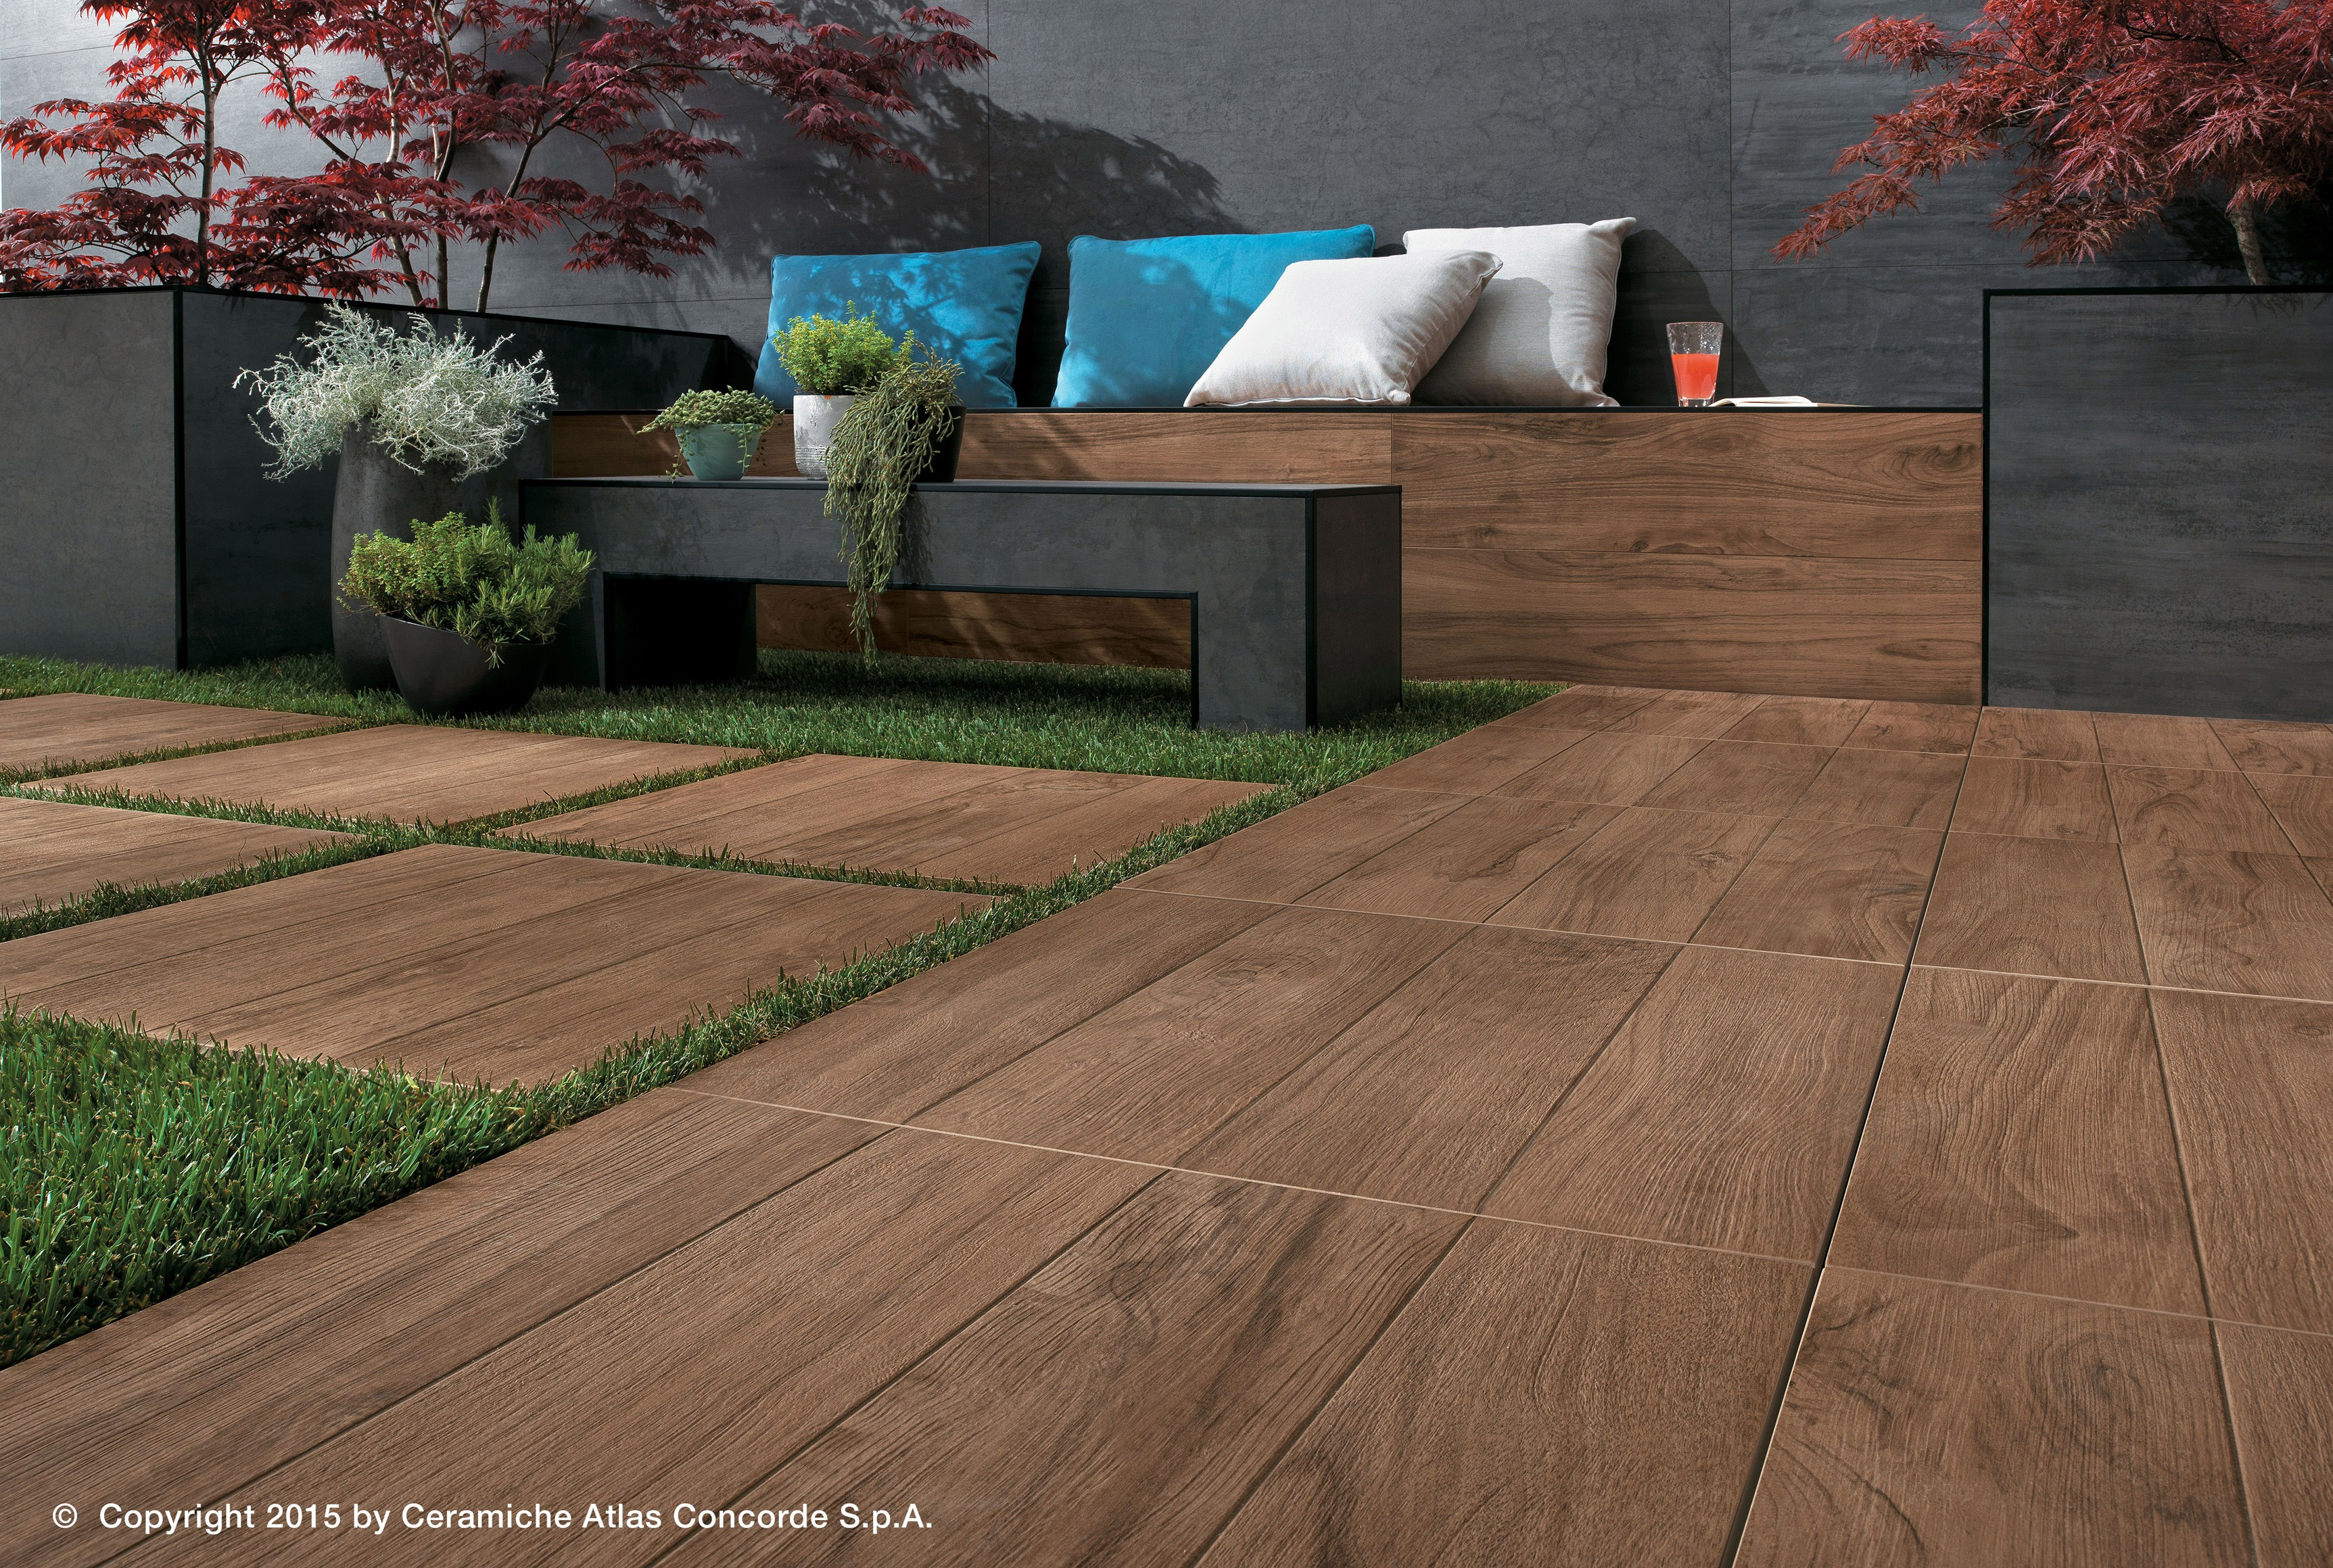 Porcelain stoneware decking etic pro outdoor paving by for Gres porcellanato carrelage